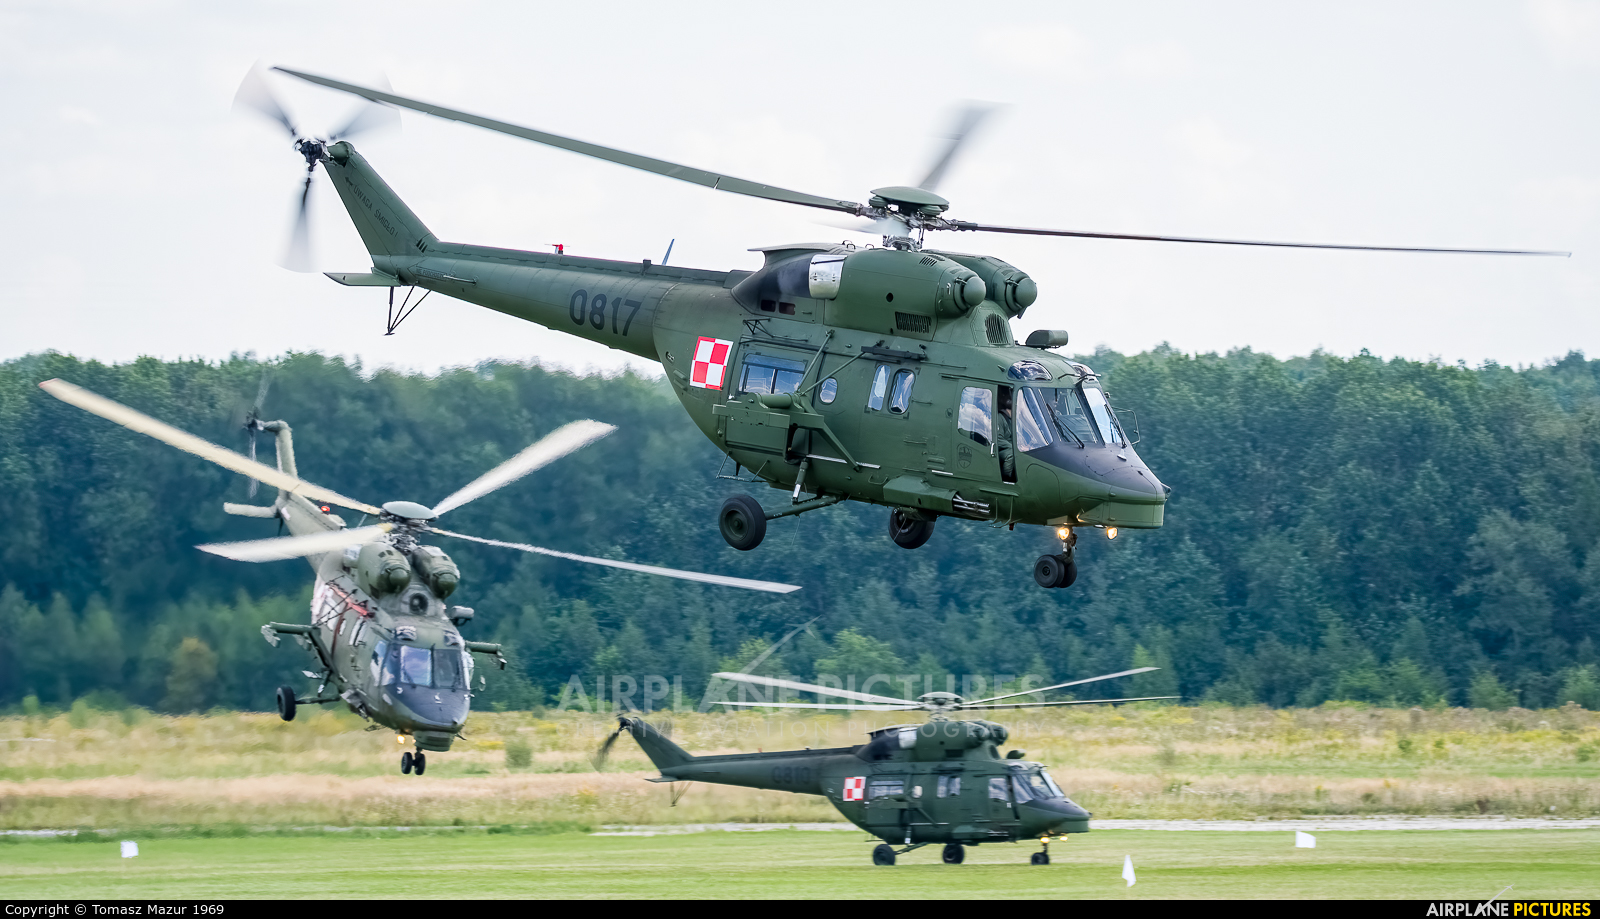 Poland - Army 0817 aircraft at Katowice Muchowiec